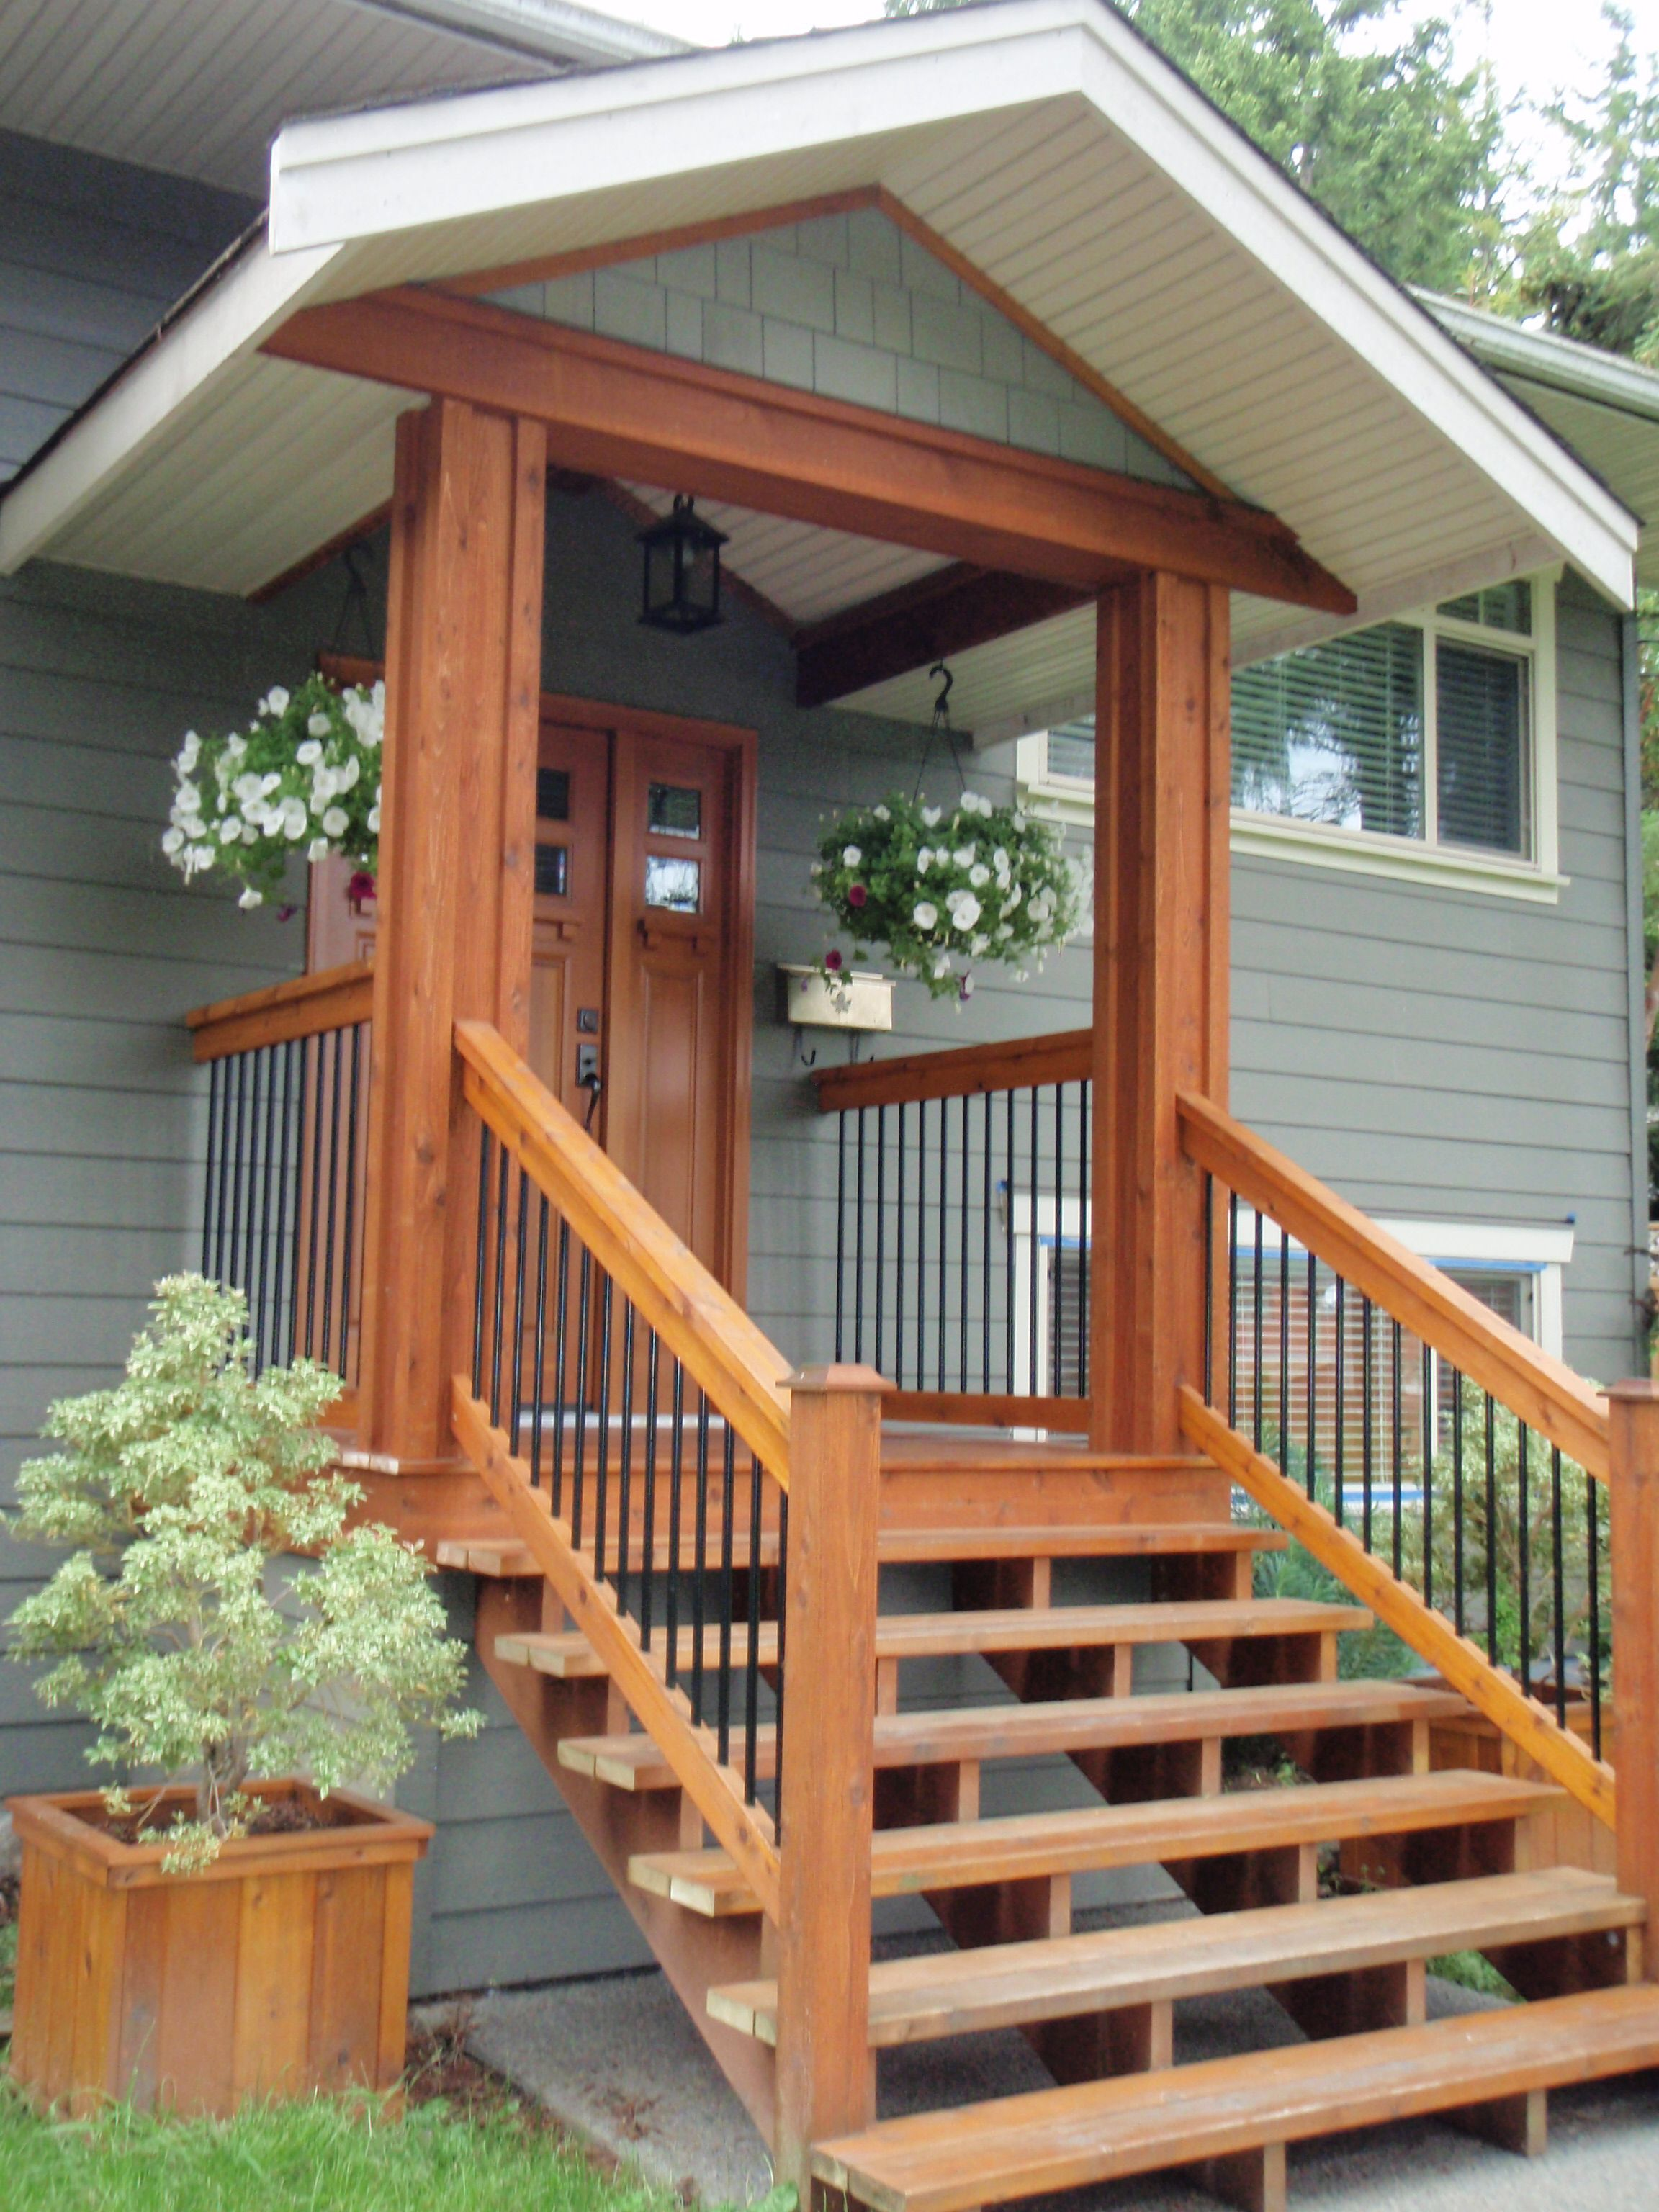 Beau Like It ... Very Small Porch Then Simple Wood Stairs. I Wonder If We Could  Figure Out A Small Overhang Like This On The Back Of Our House That Would  Look ...